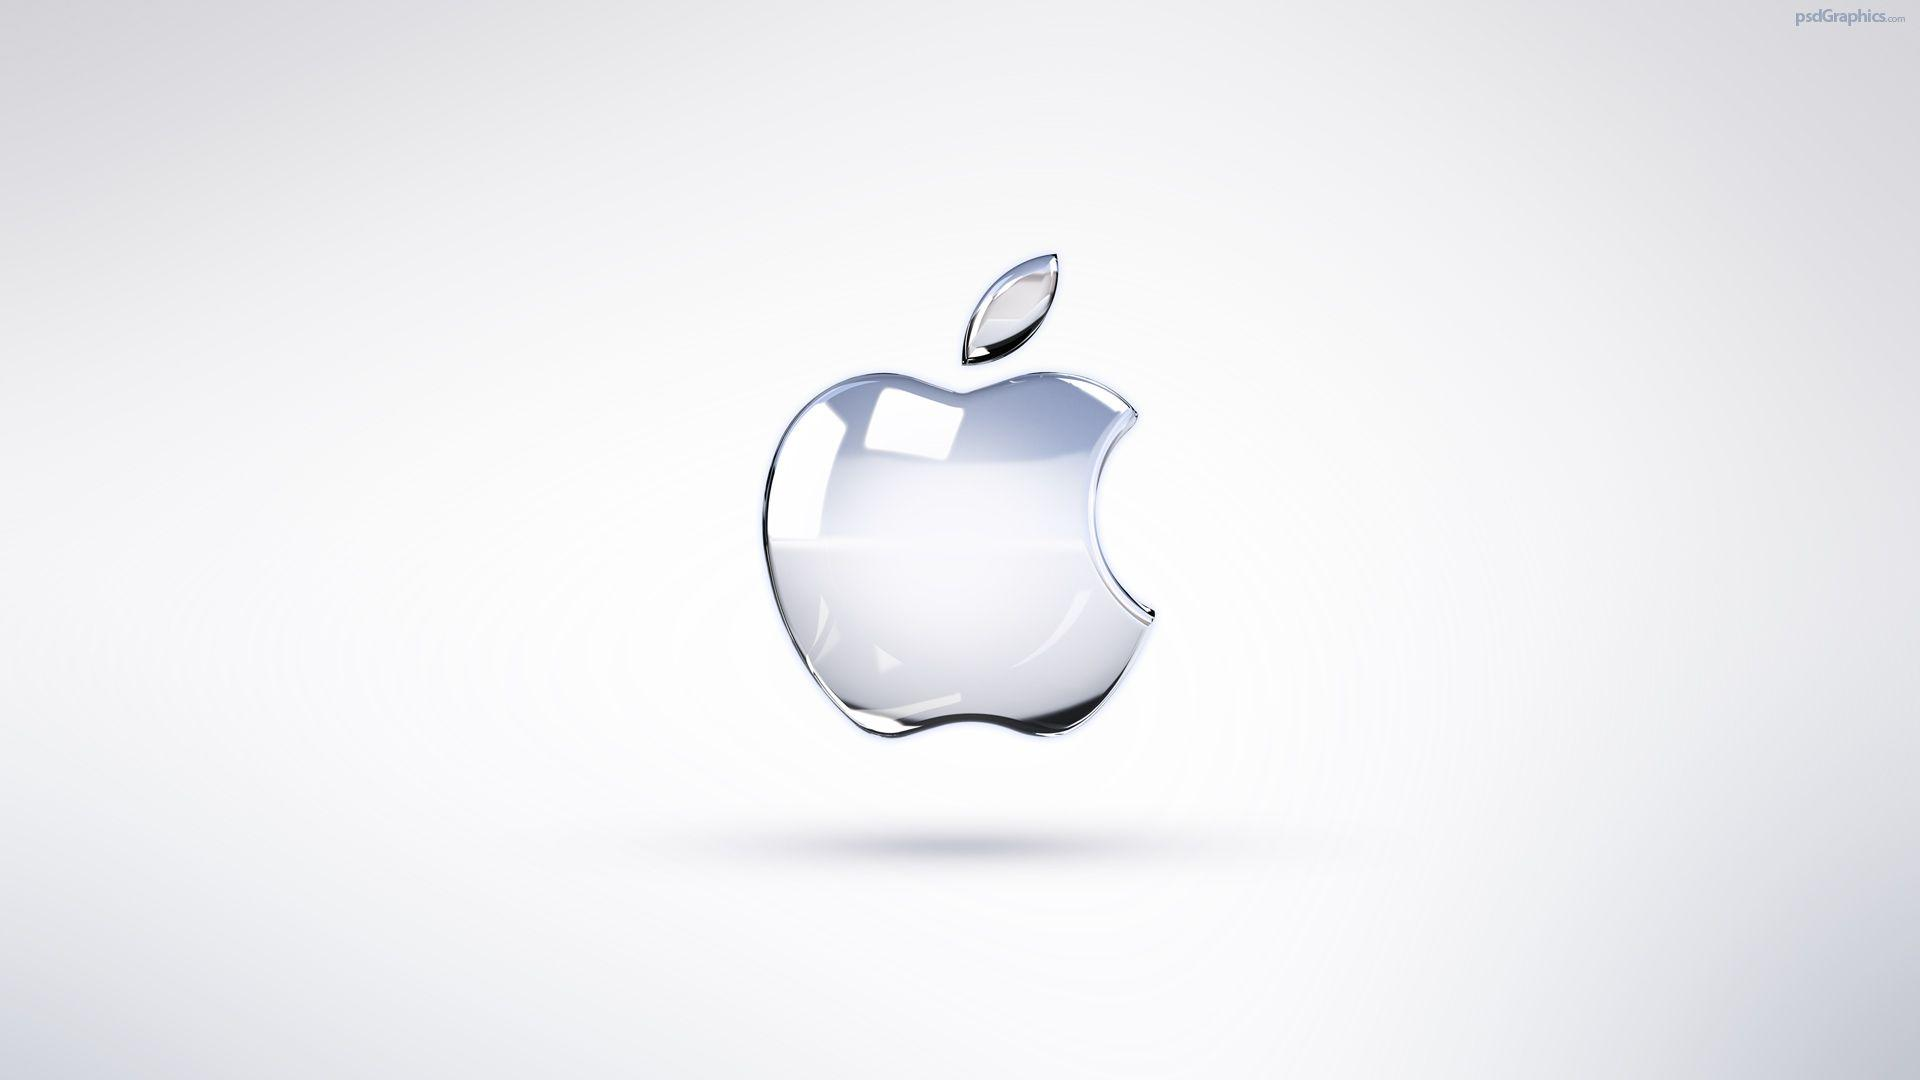 Apple Wallpapers HD 1080p